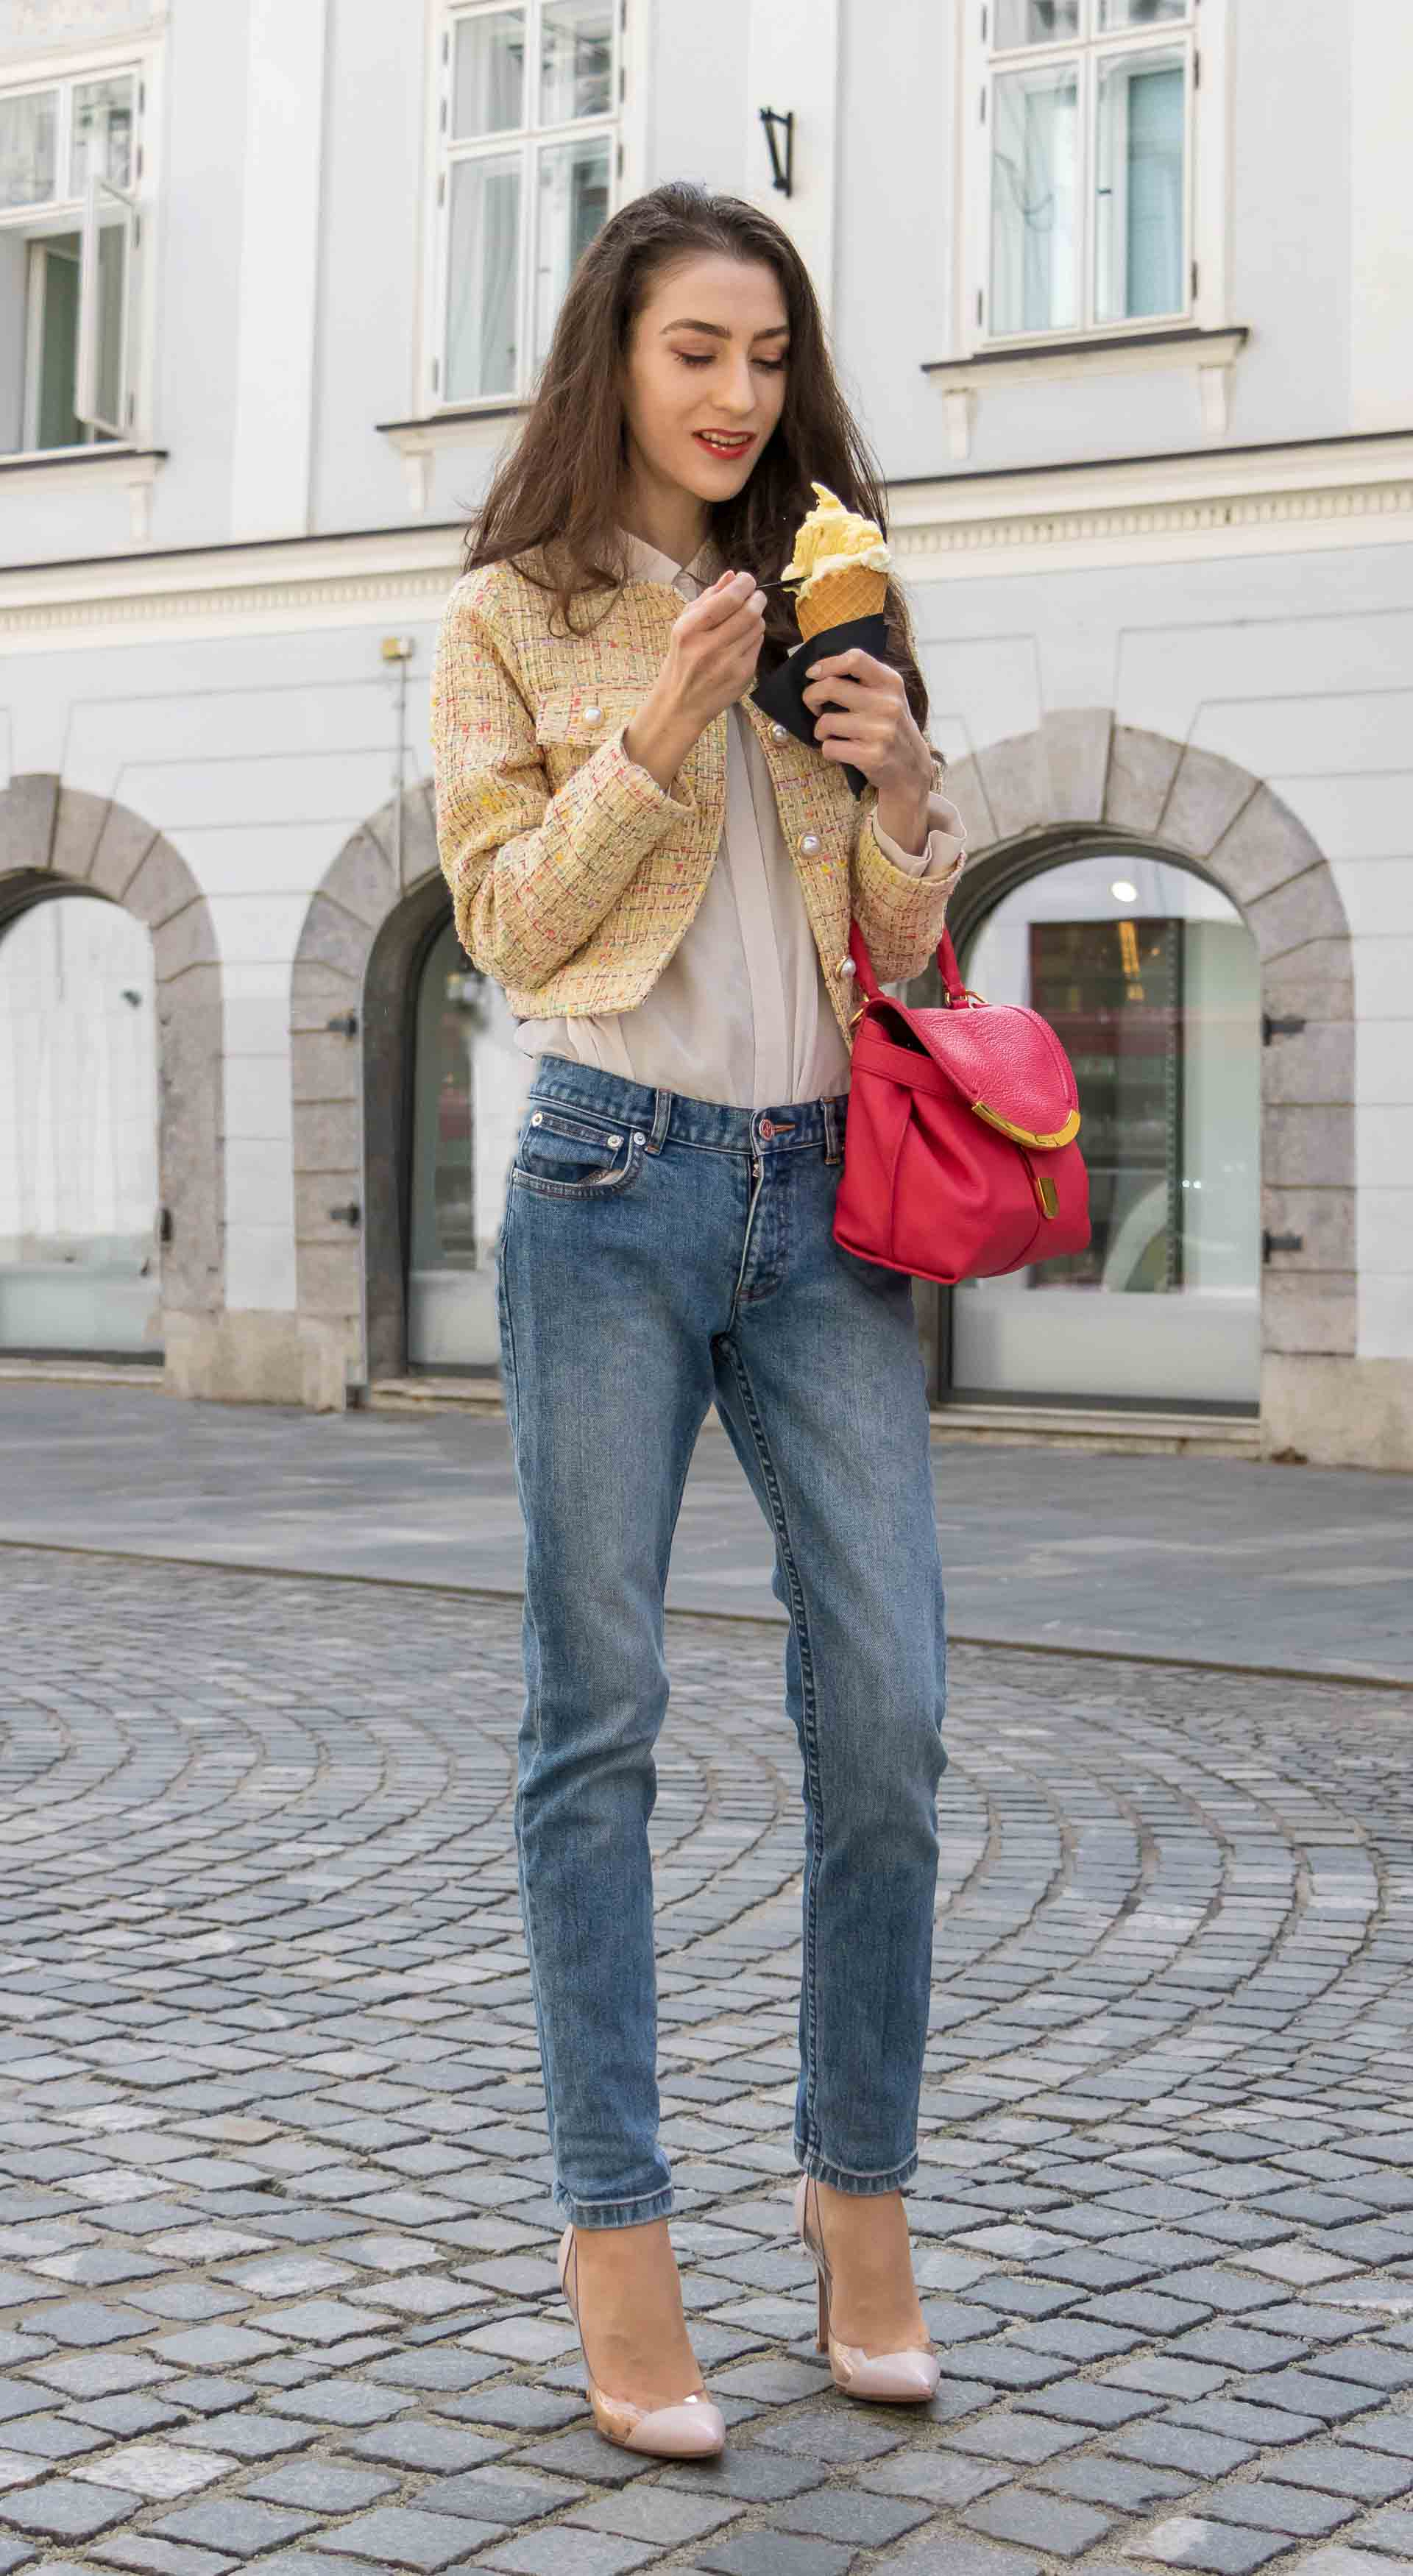 Veronika Lipar Fashion Blogger of Brunette from Wall Street dressed in chic casual everyday spring outfit, the yellow tweed jacket from Storets, blue jeans from A.P.C., blush Gianvito Rossi plexi pumps, pink top handle bag and organza white shirt on the street eating cone ice cream